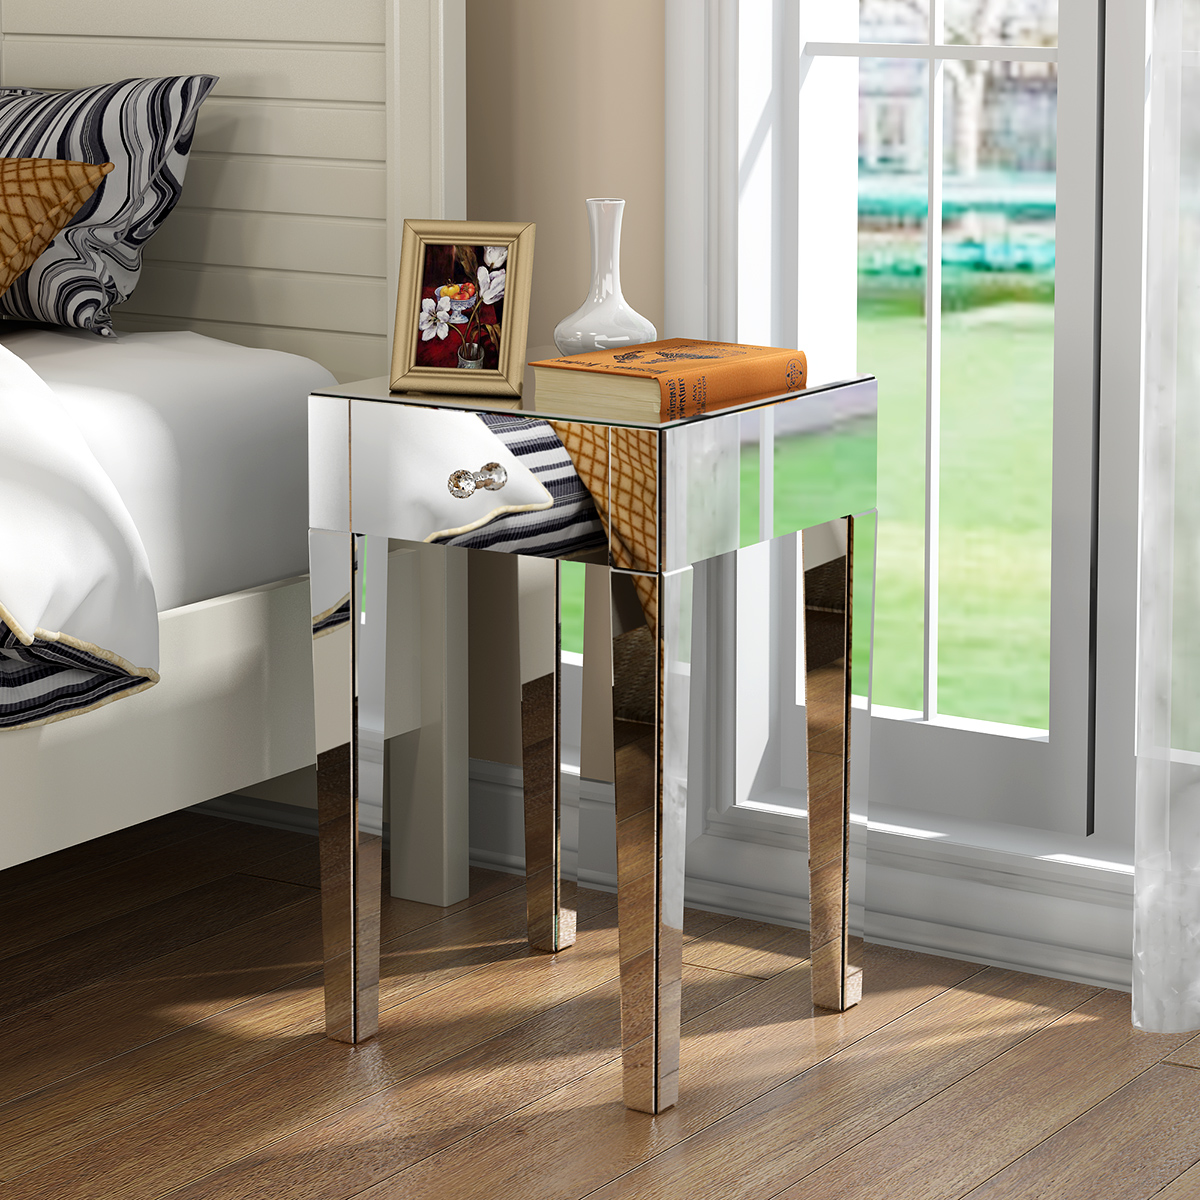 Panana Mirrored Glass Bedside Table With Drawers And Glass Handles Mirror Fast Delivery Bedroom Furniture